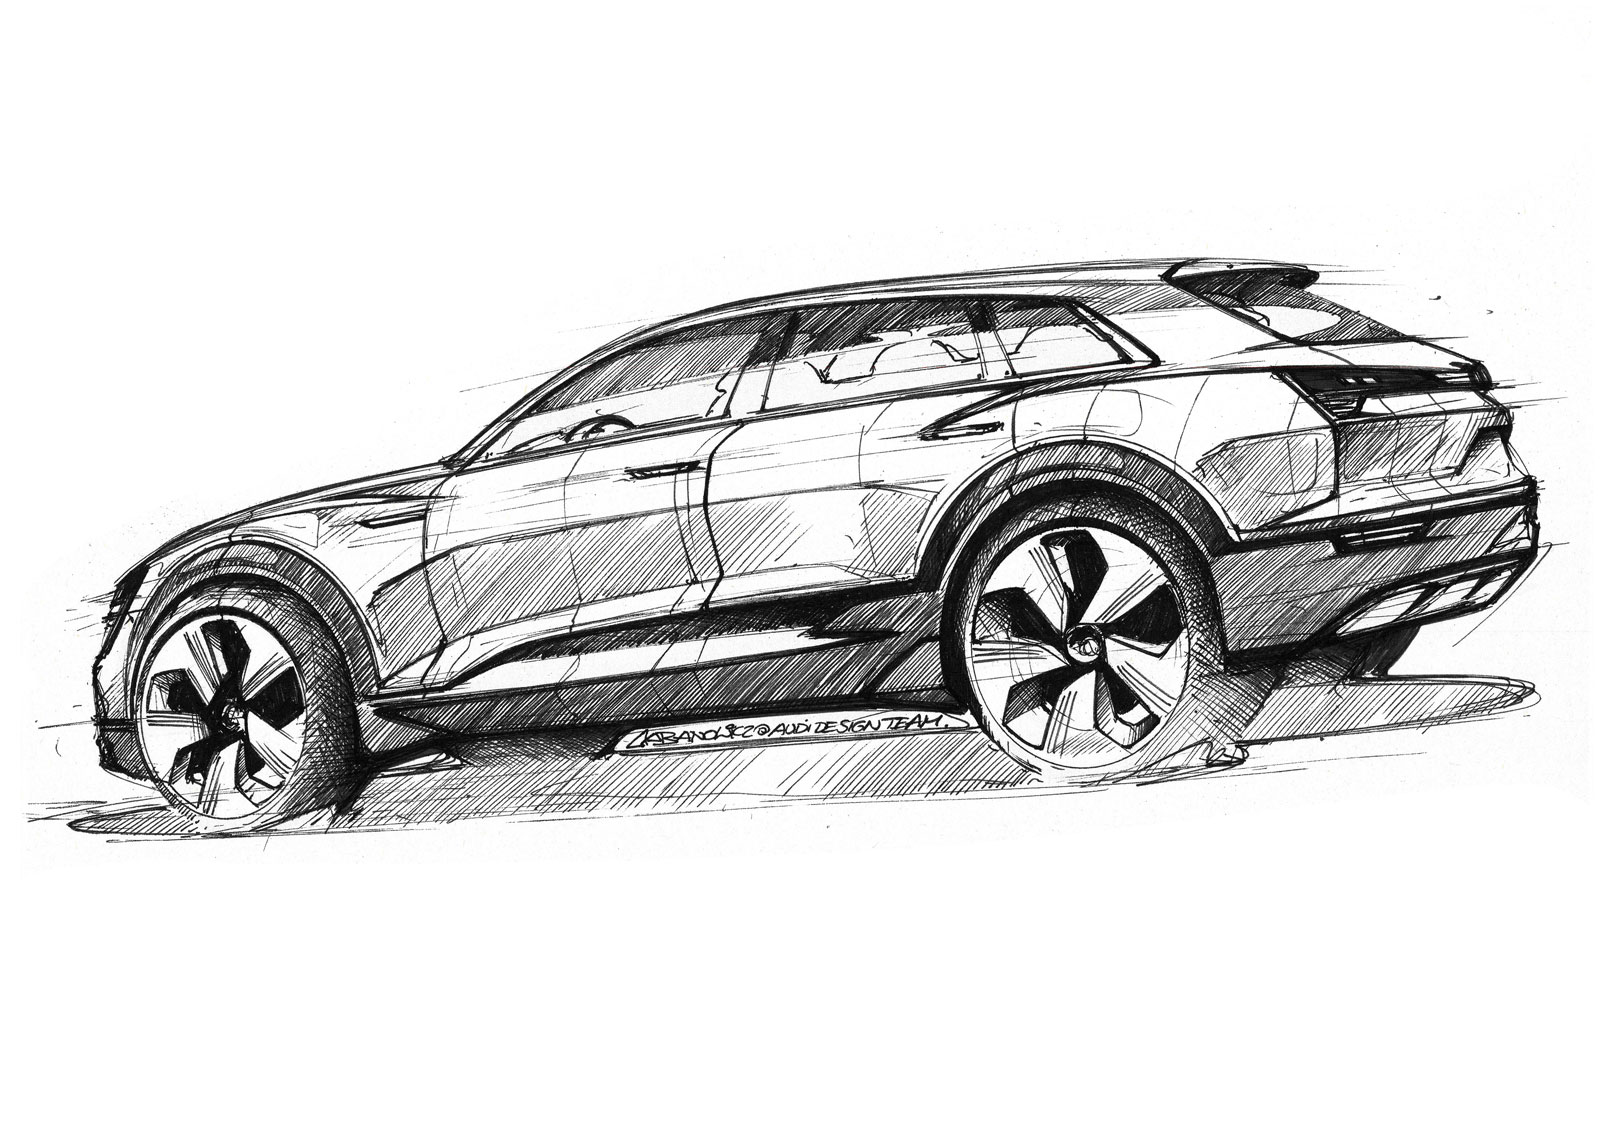 Transportation exterior sketches on pinterest car for Exterior car design